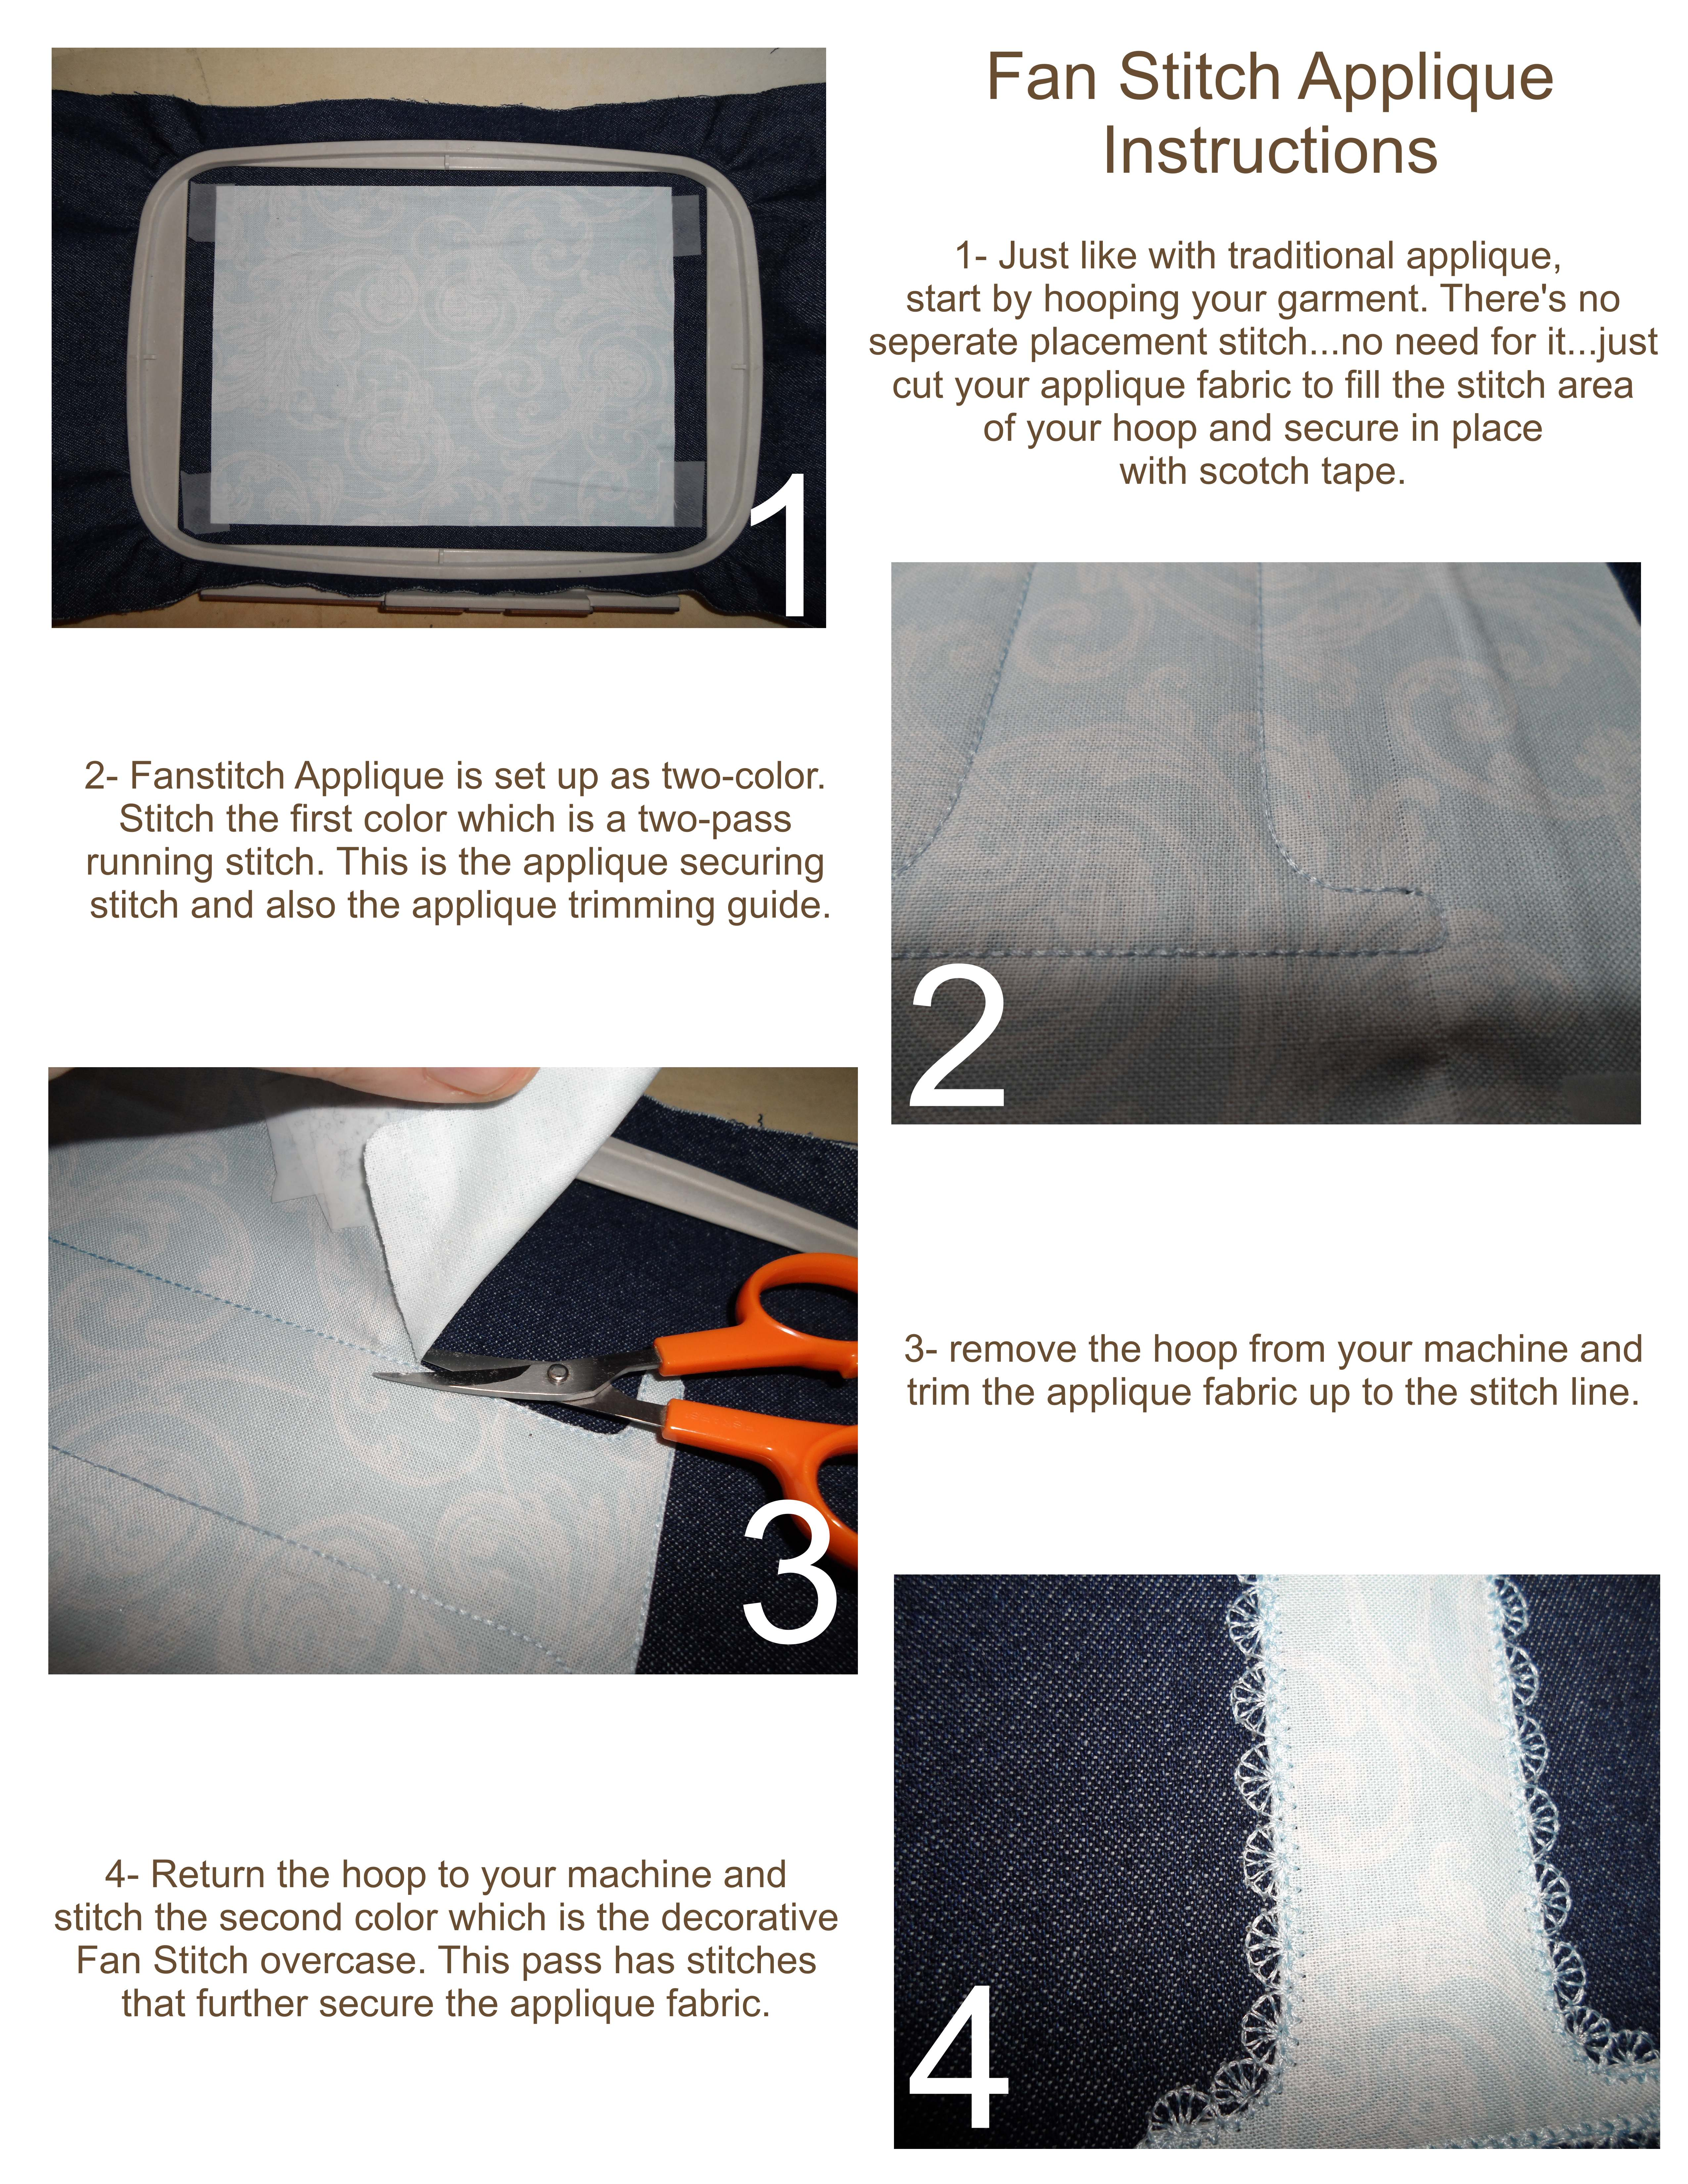 fan-stitch-instructions.jpg